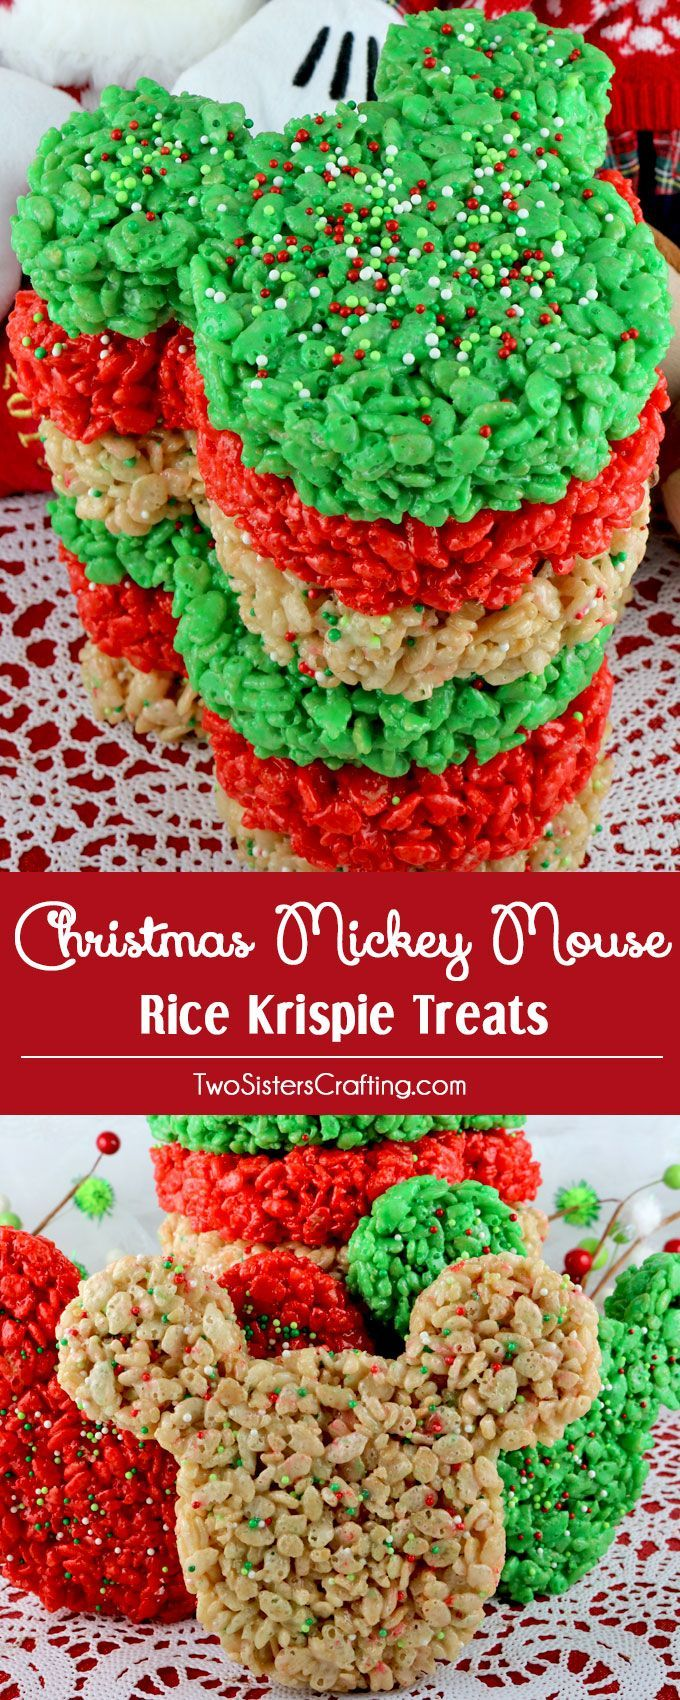 Christmas Colored Rice Krispie Treats With Mickey Mouse Cookie